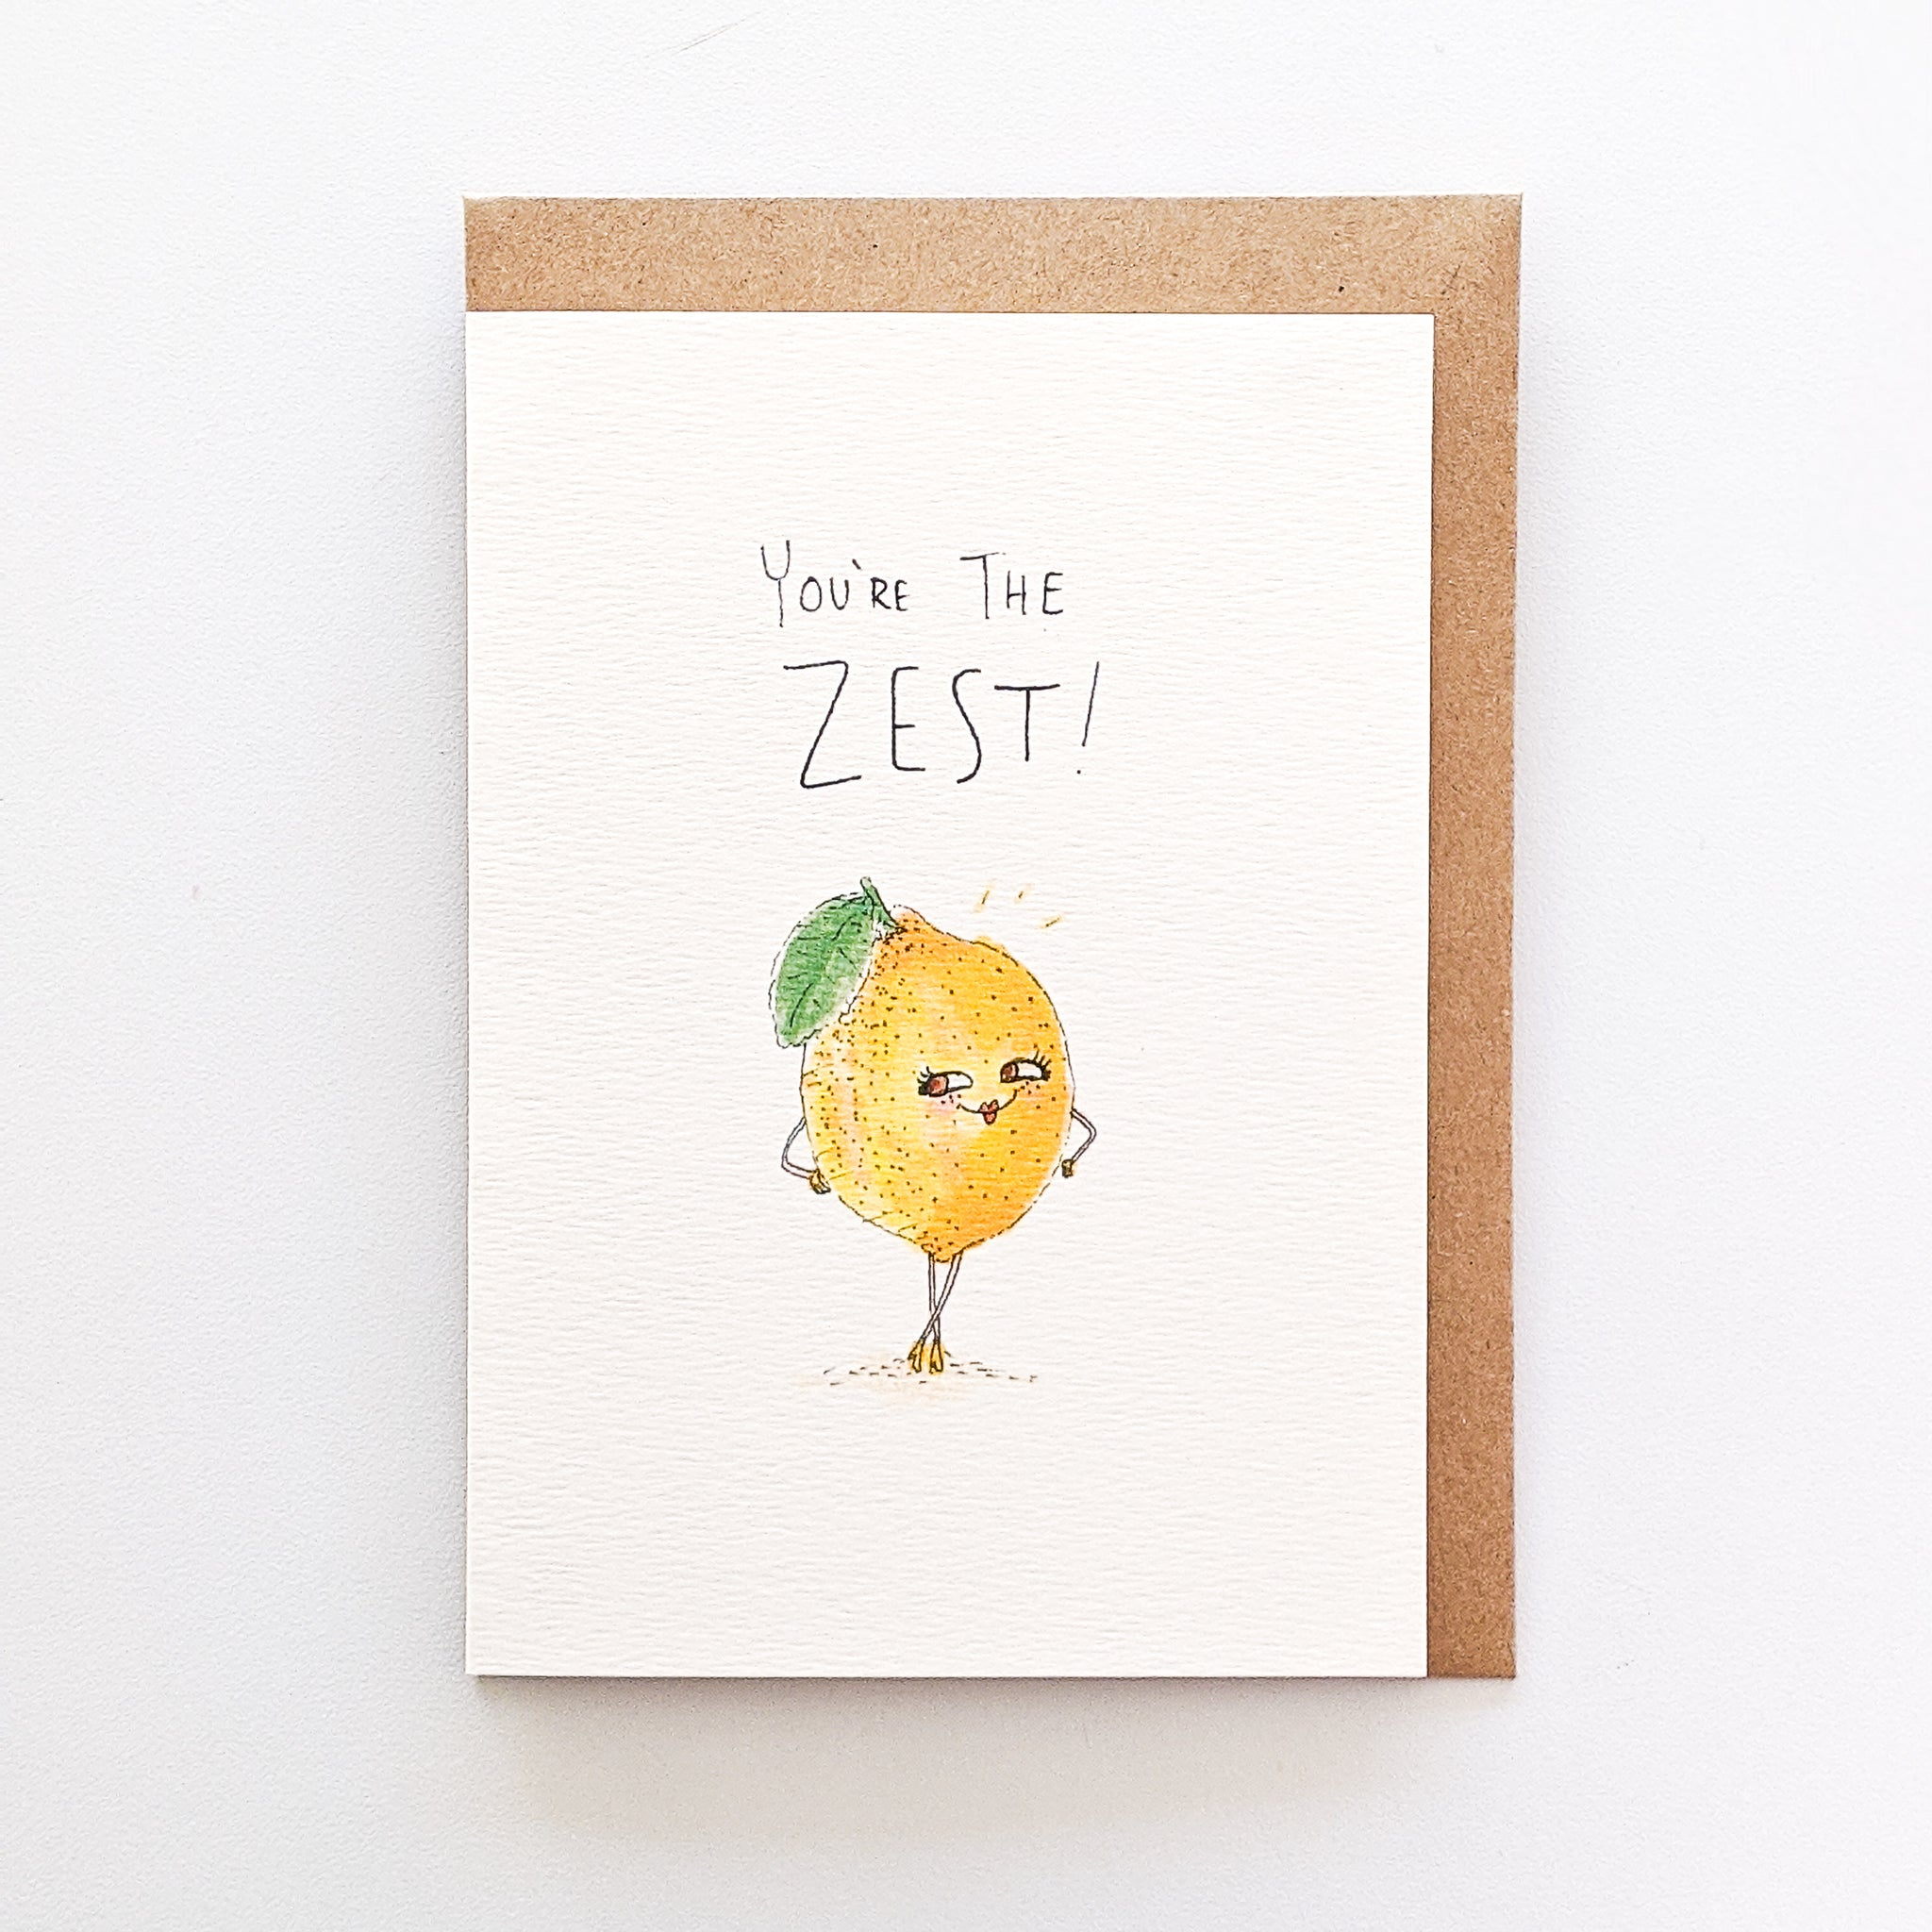 You're The Zest - Well Drawn